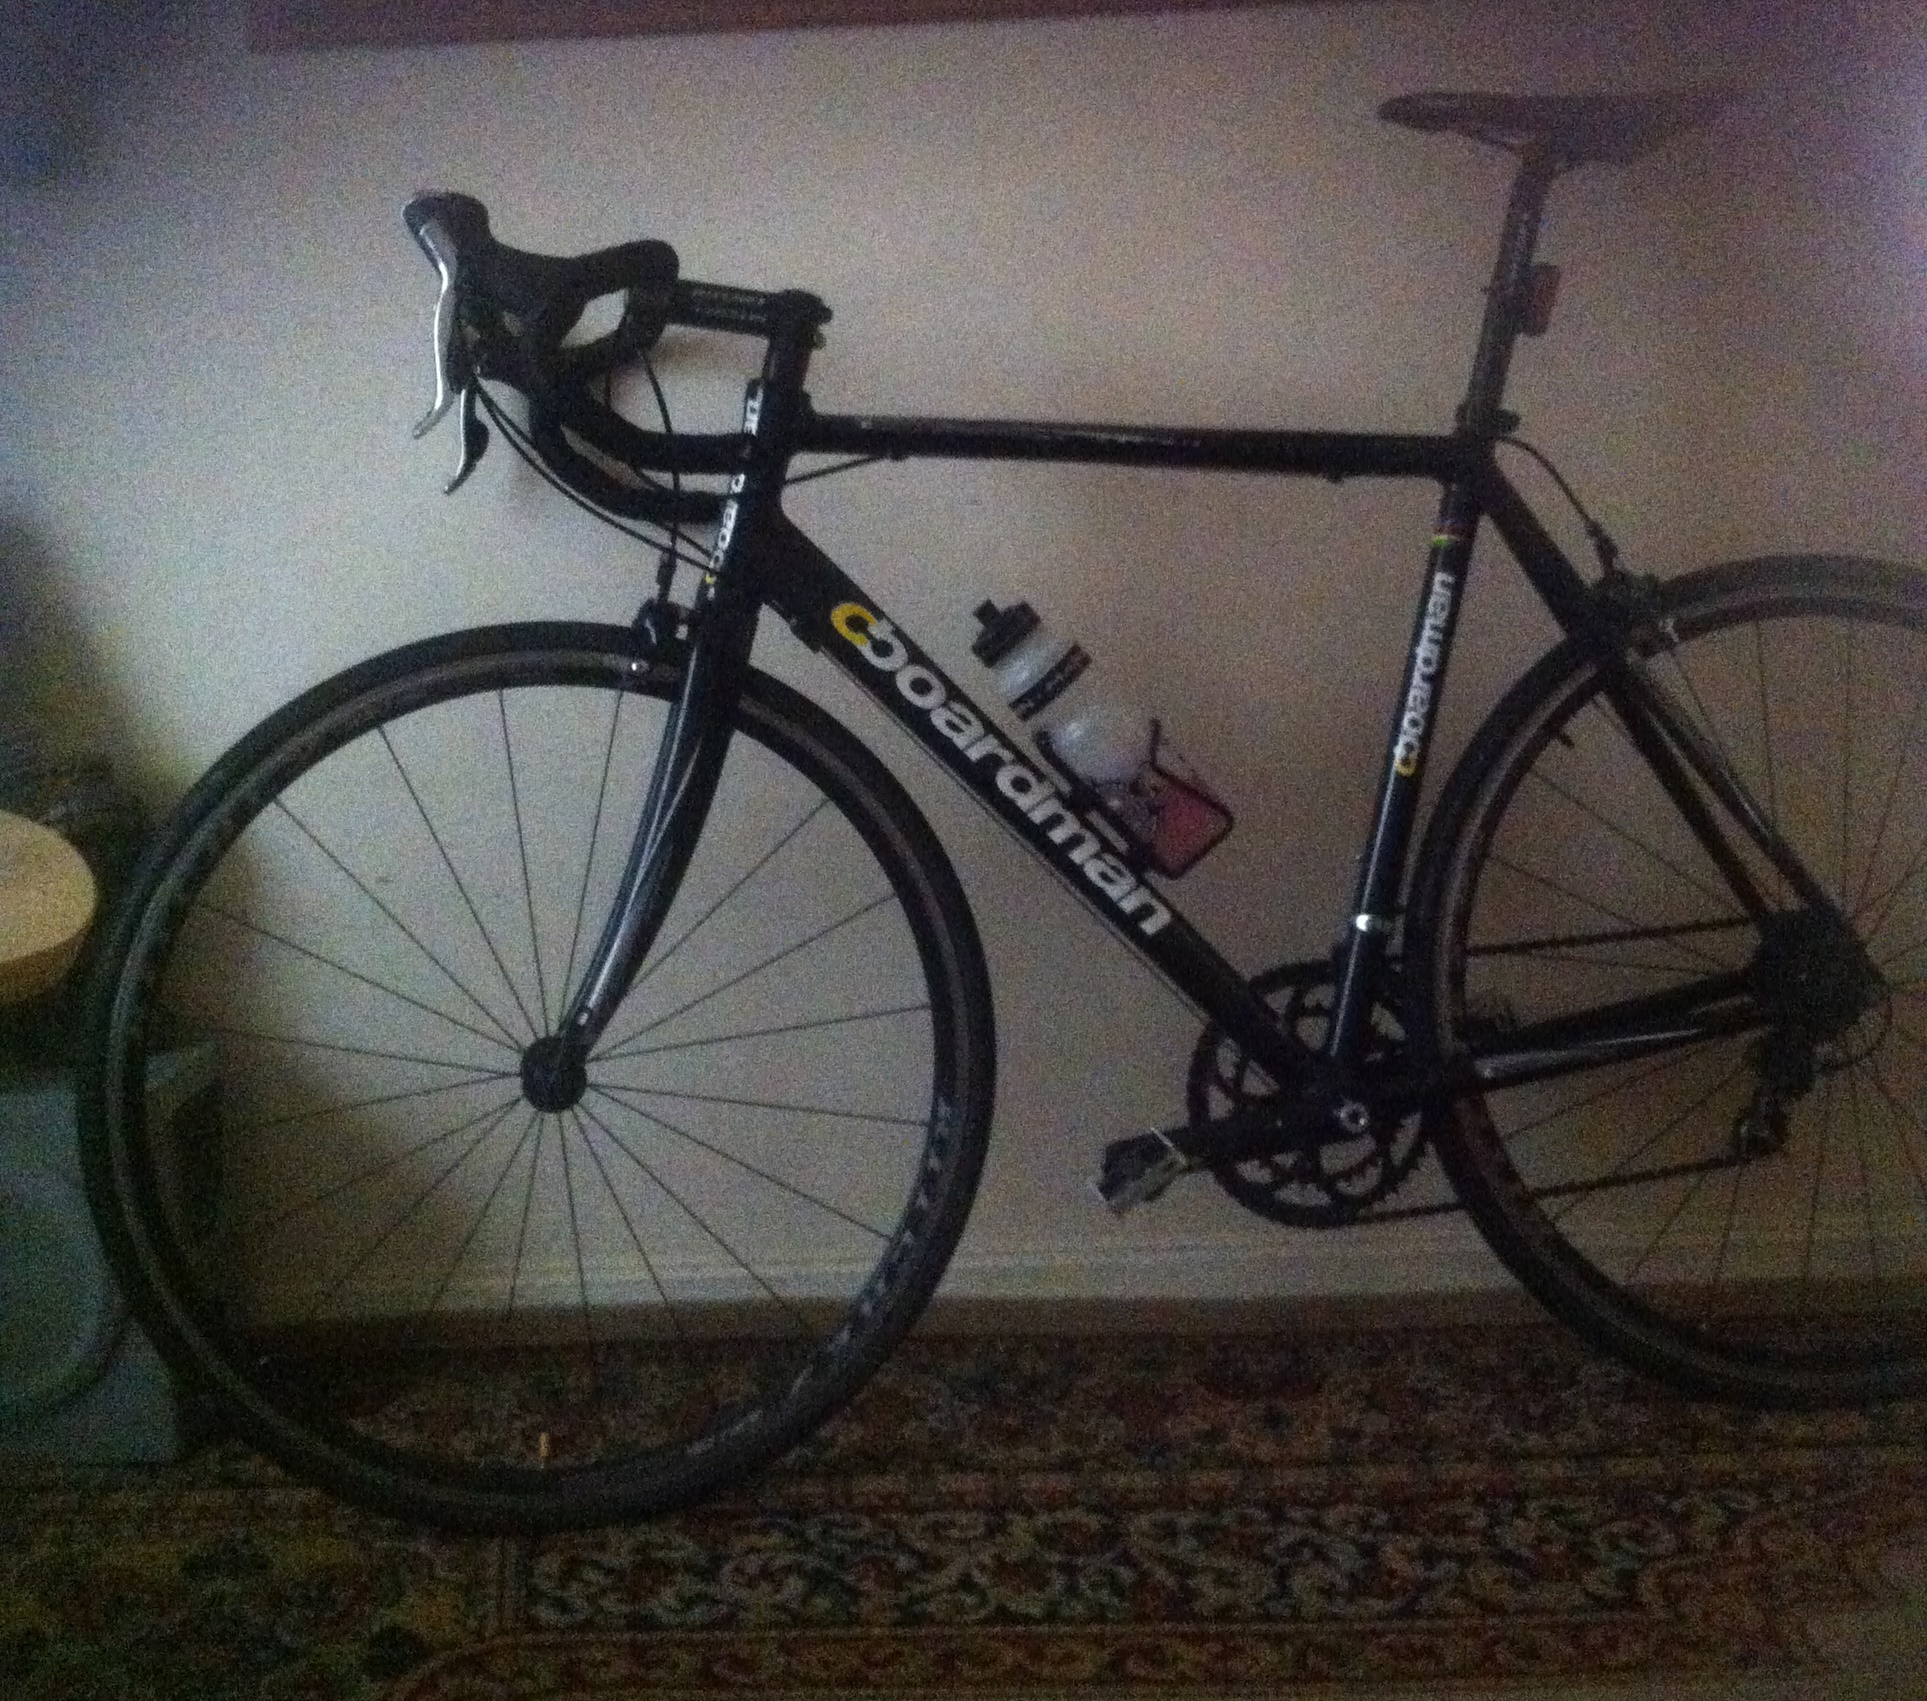 The man's Boardman racing bike was stolen in the attack